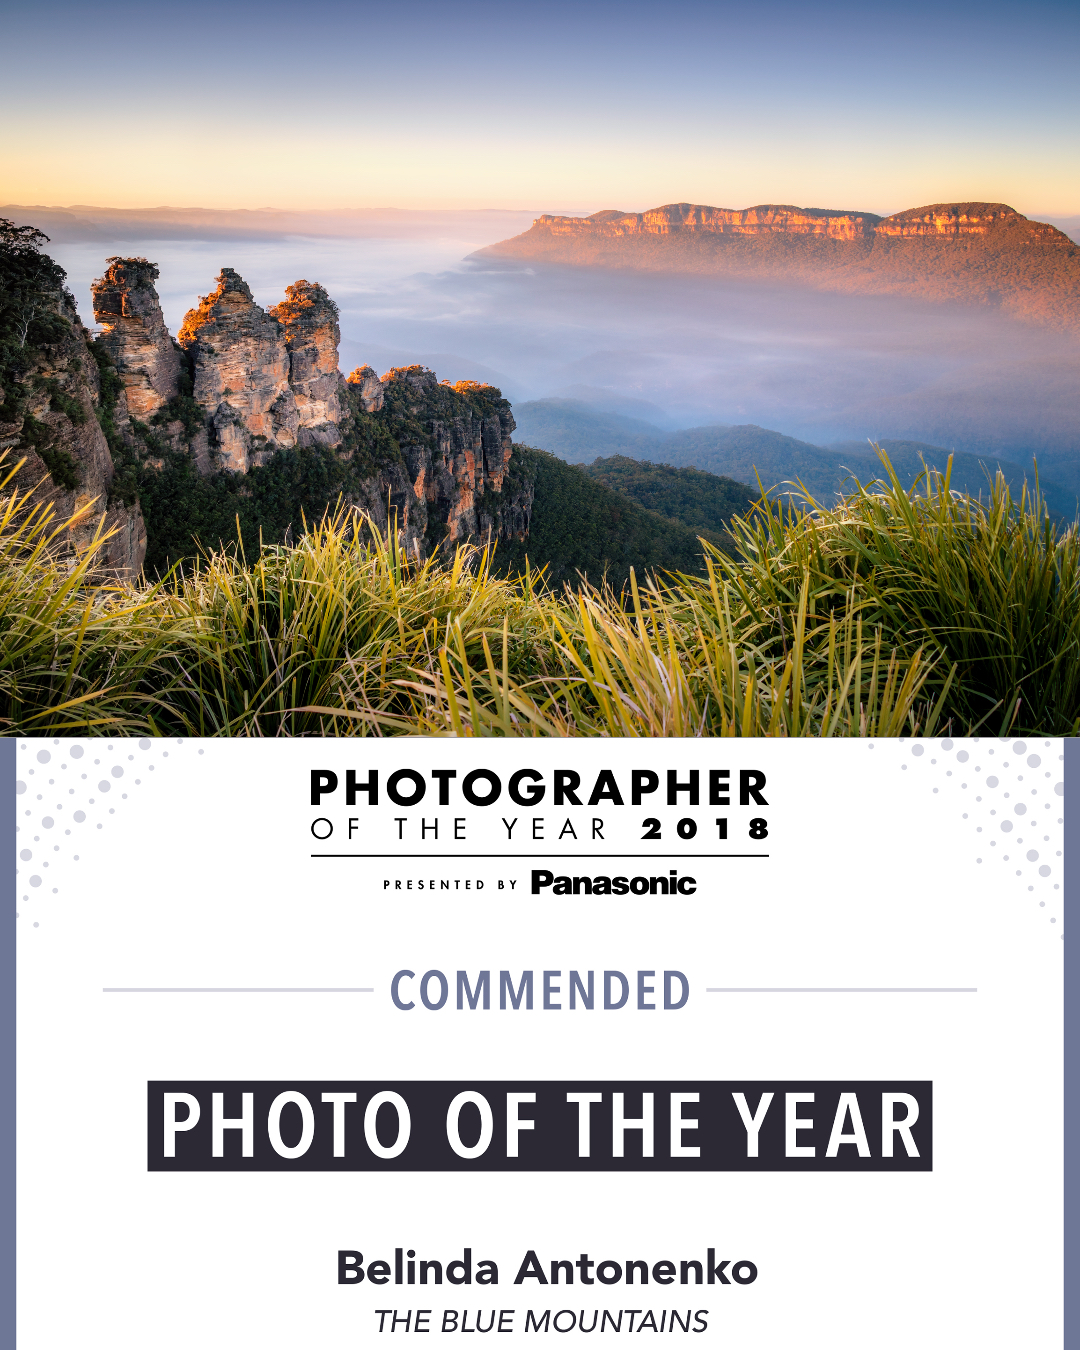 Photographer Of The Year Award - The Blue Mountains